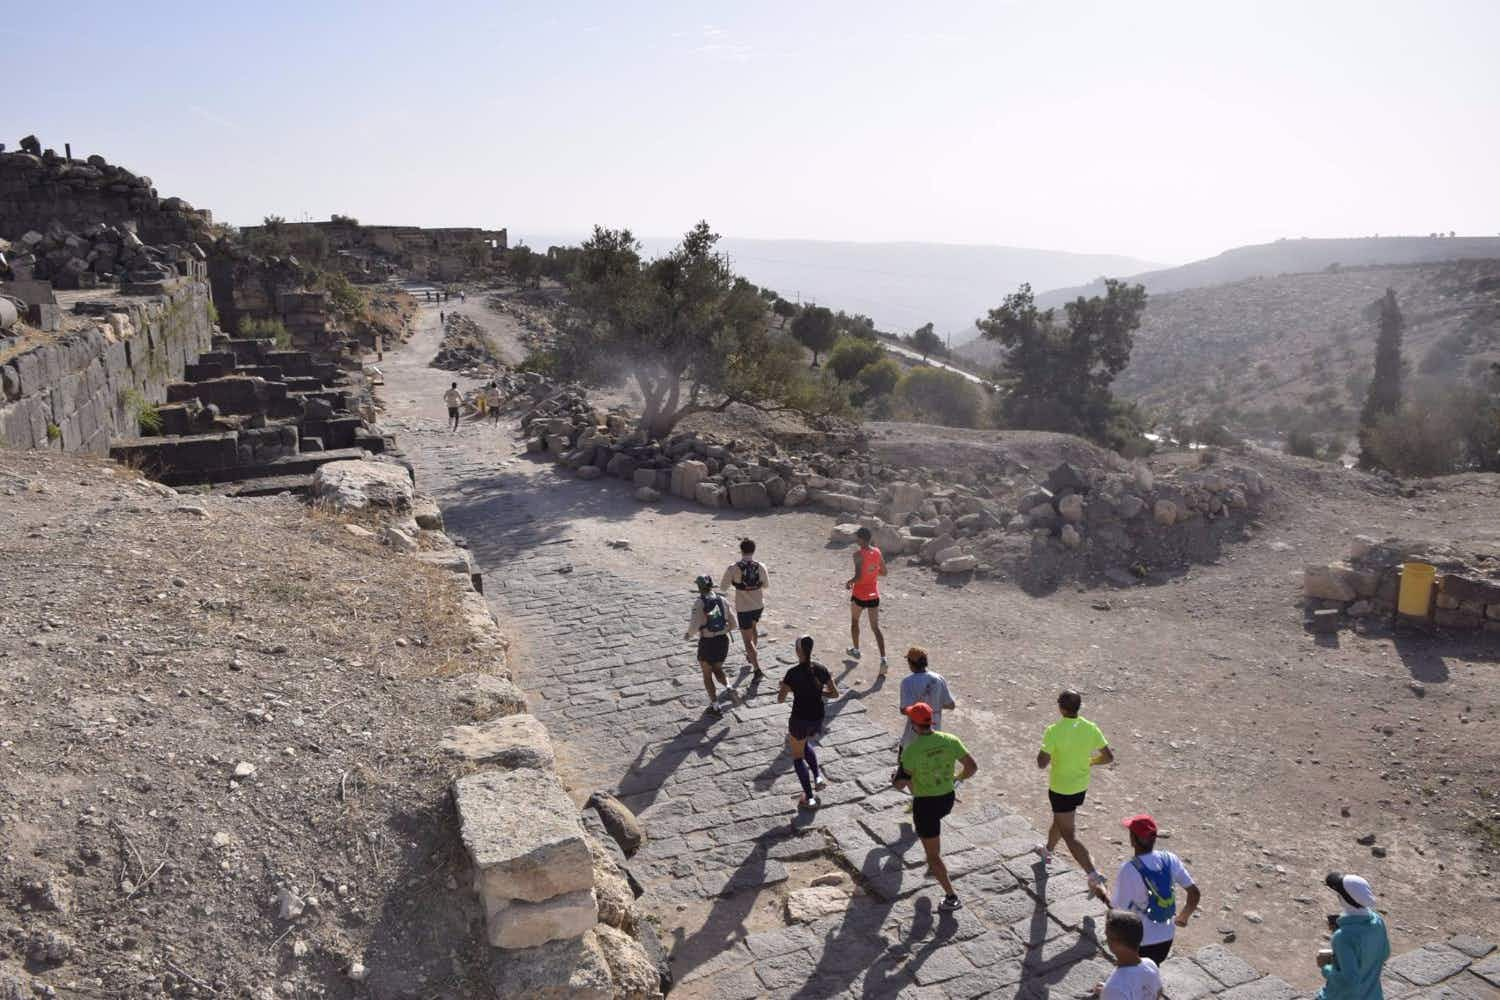 Athletes are attempting to run 650 km through Jordan in a 15 day challenge